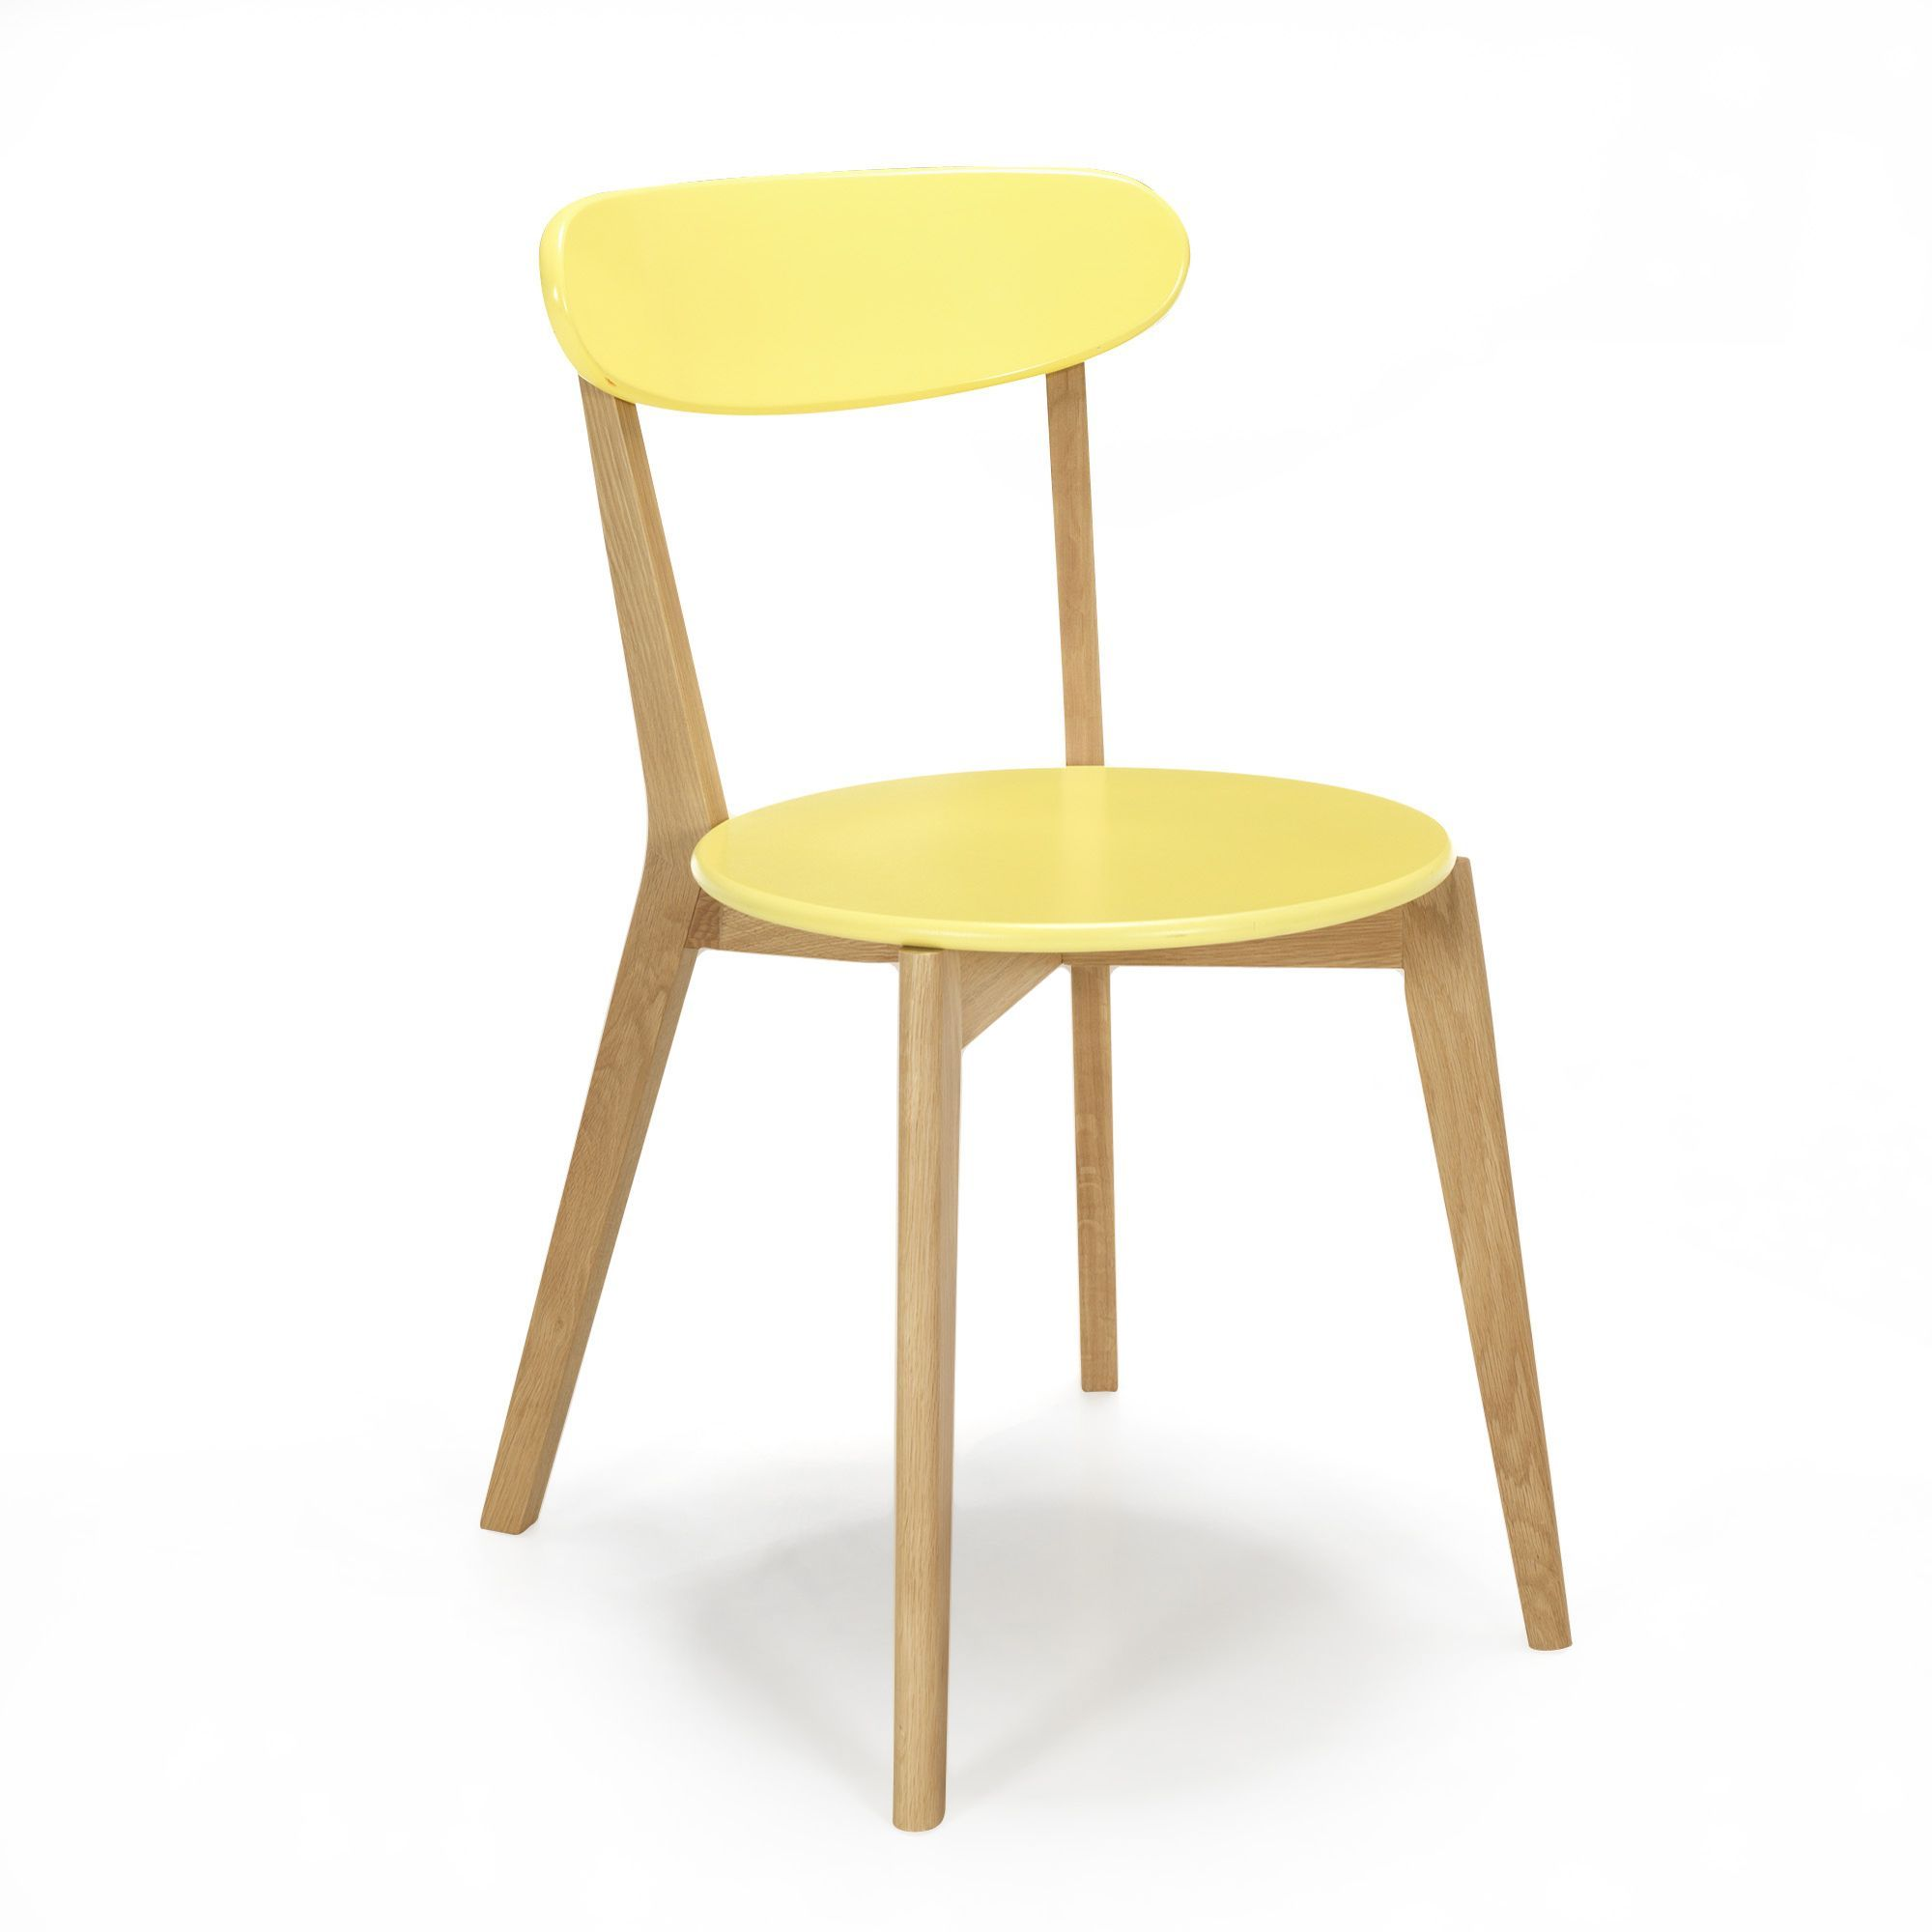 Chaise design scandinave coloris jaune jaune siwa chaises tables et chaises salon et Table a manger alinea